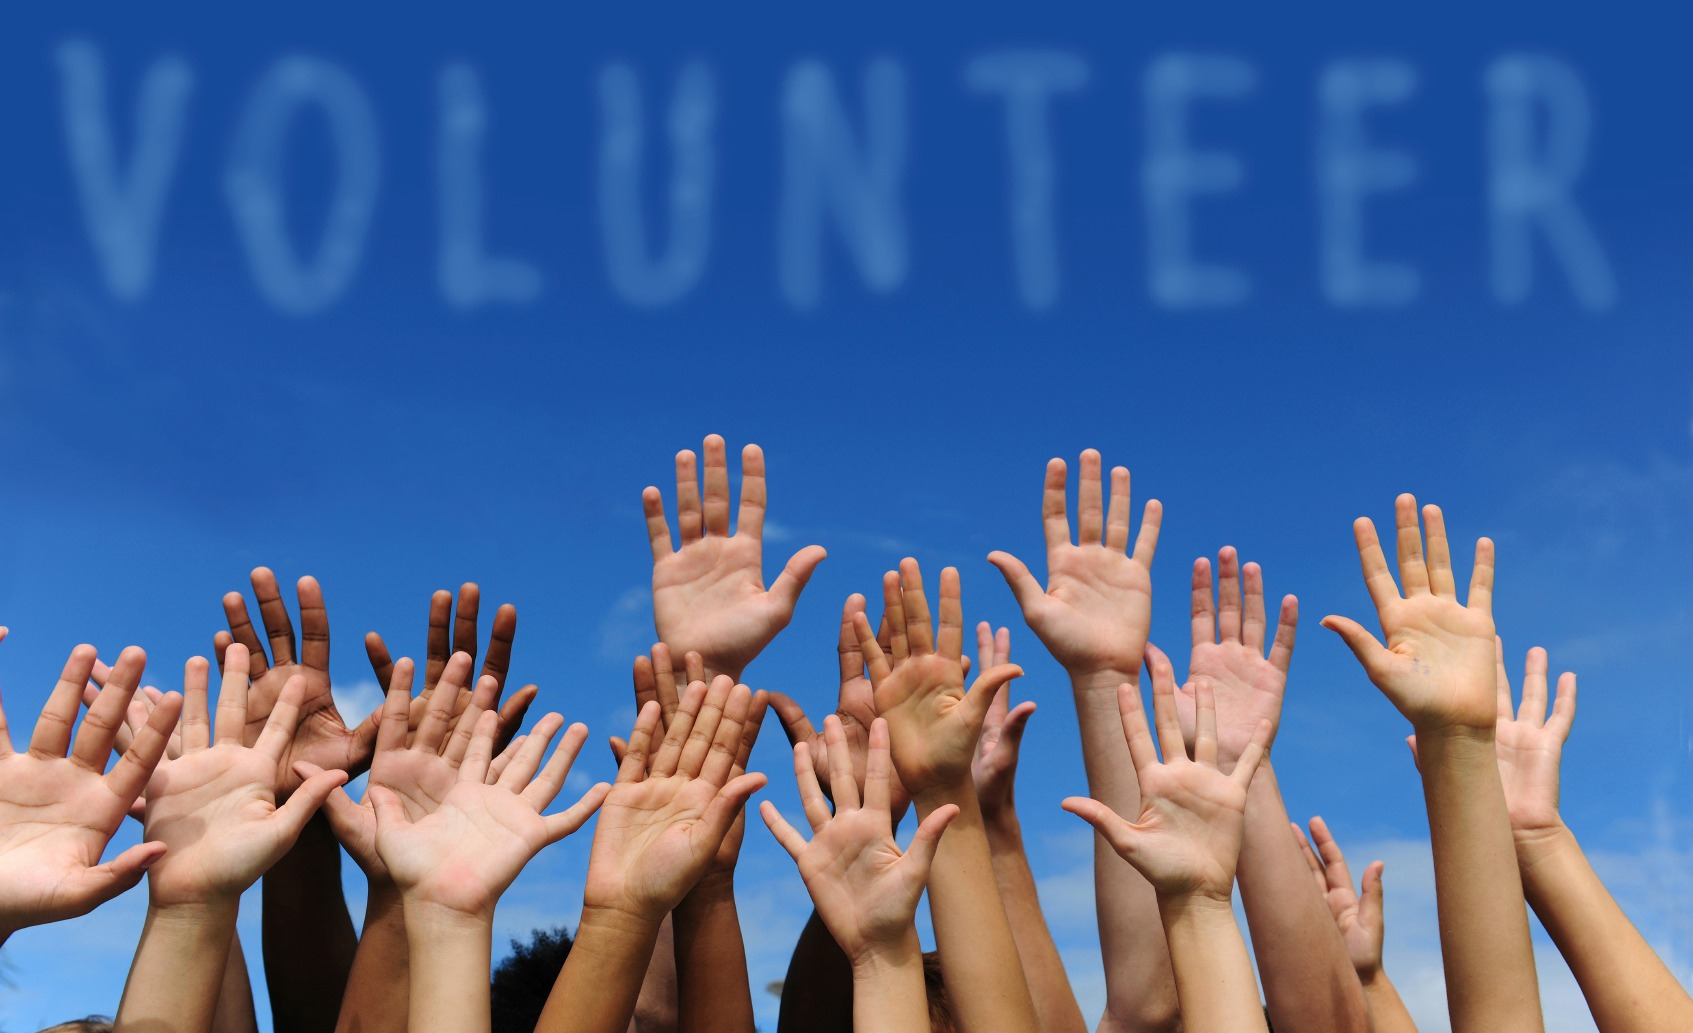 Make a difference with your free time... volunteer!